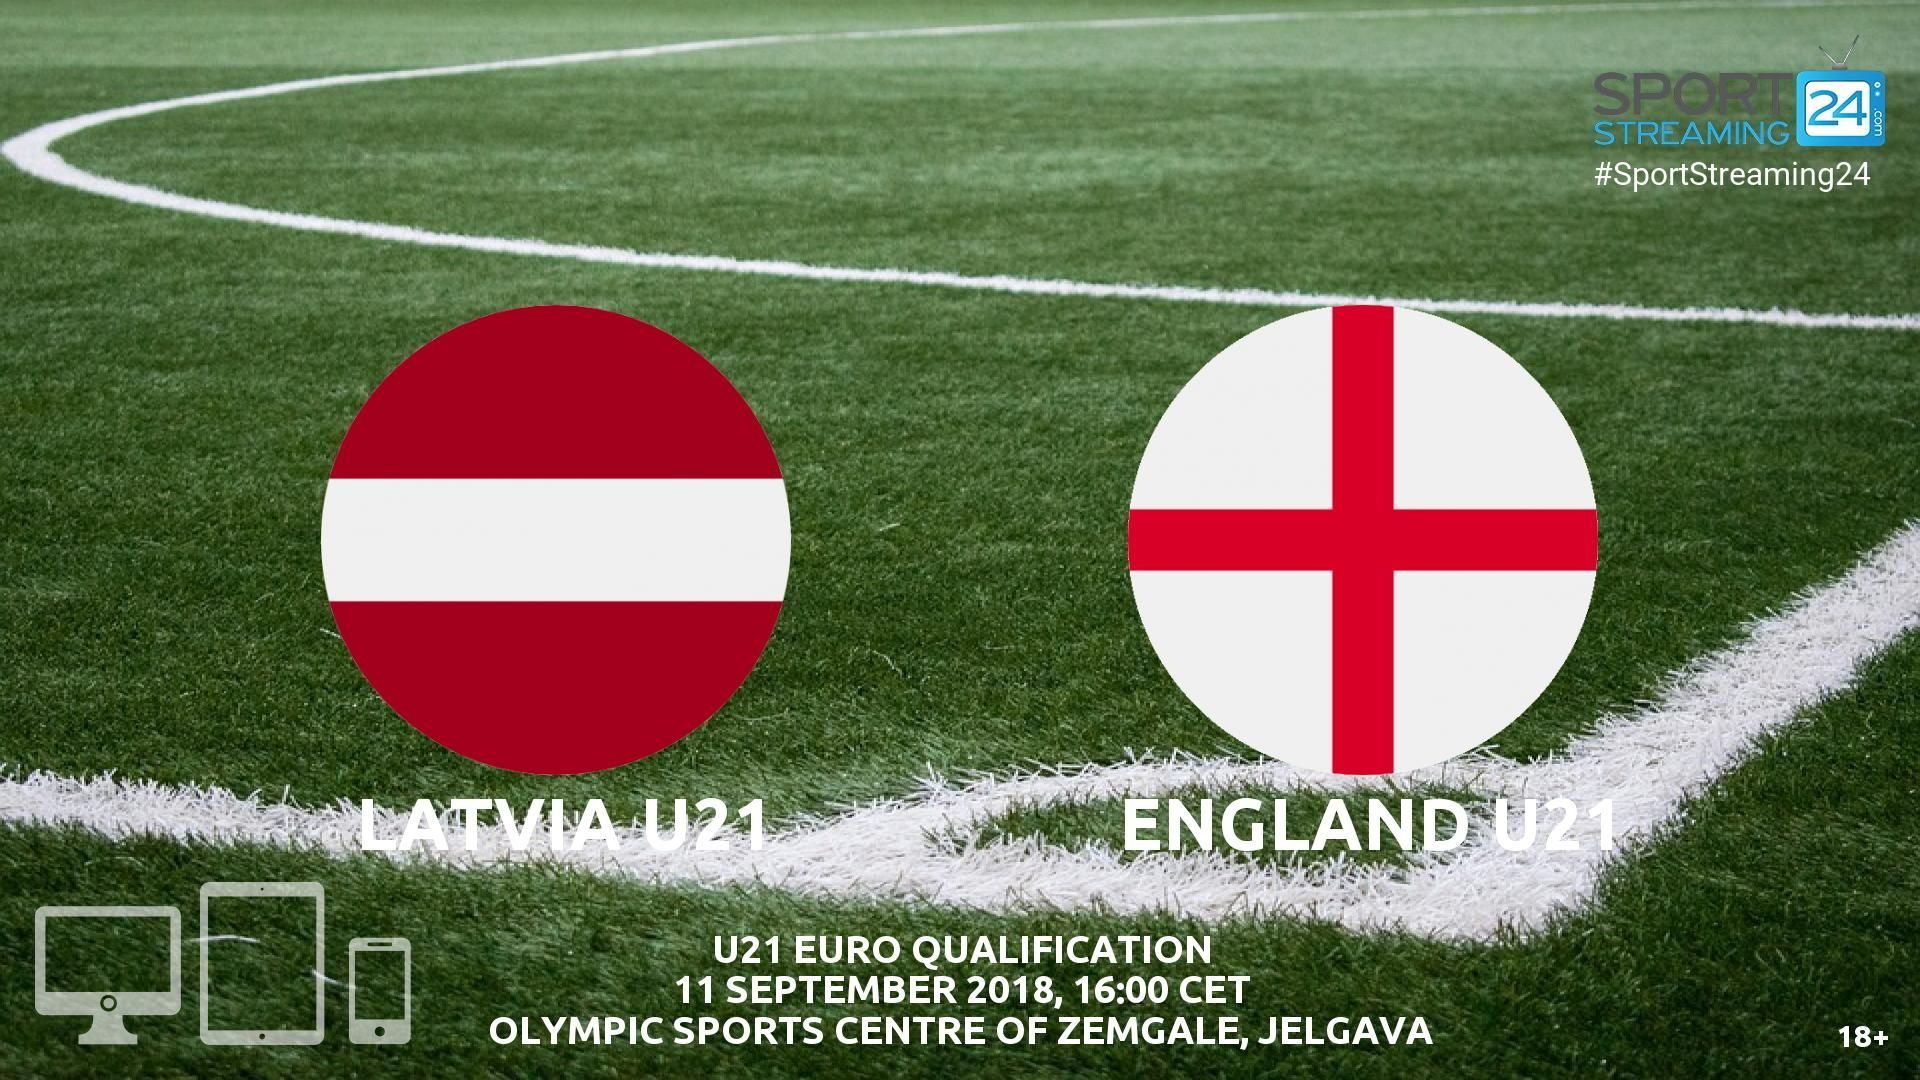 Latvia U21 v England U21 Live Streaming Football